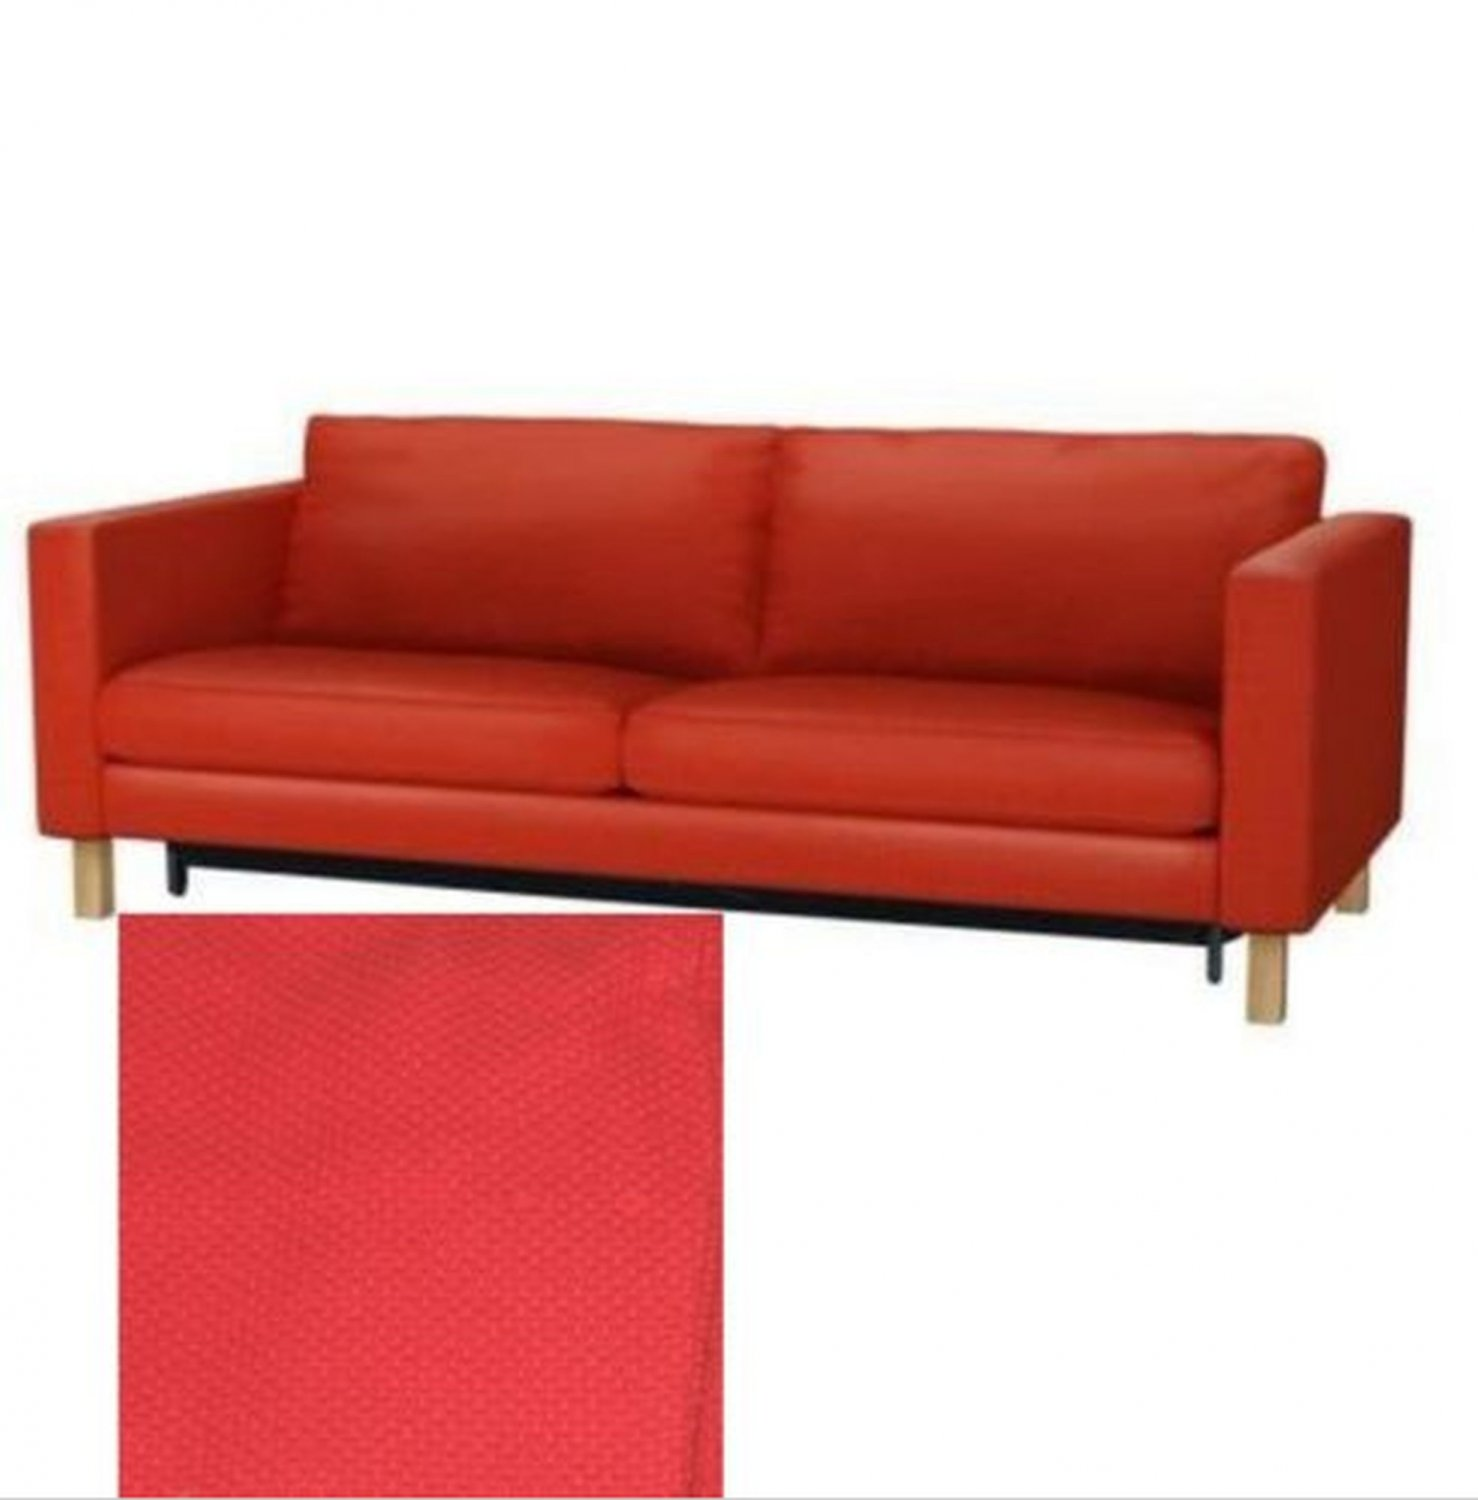 ikea karlstad sofa bed sofabed slipcover cover korndal red xmas. Black Bedroom Furniture Sets. Home Design Ideas